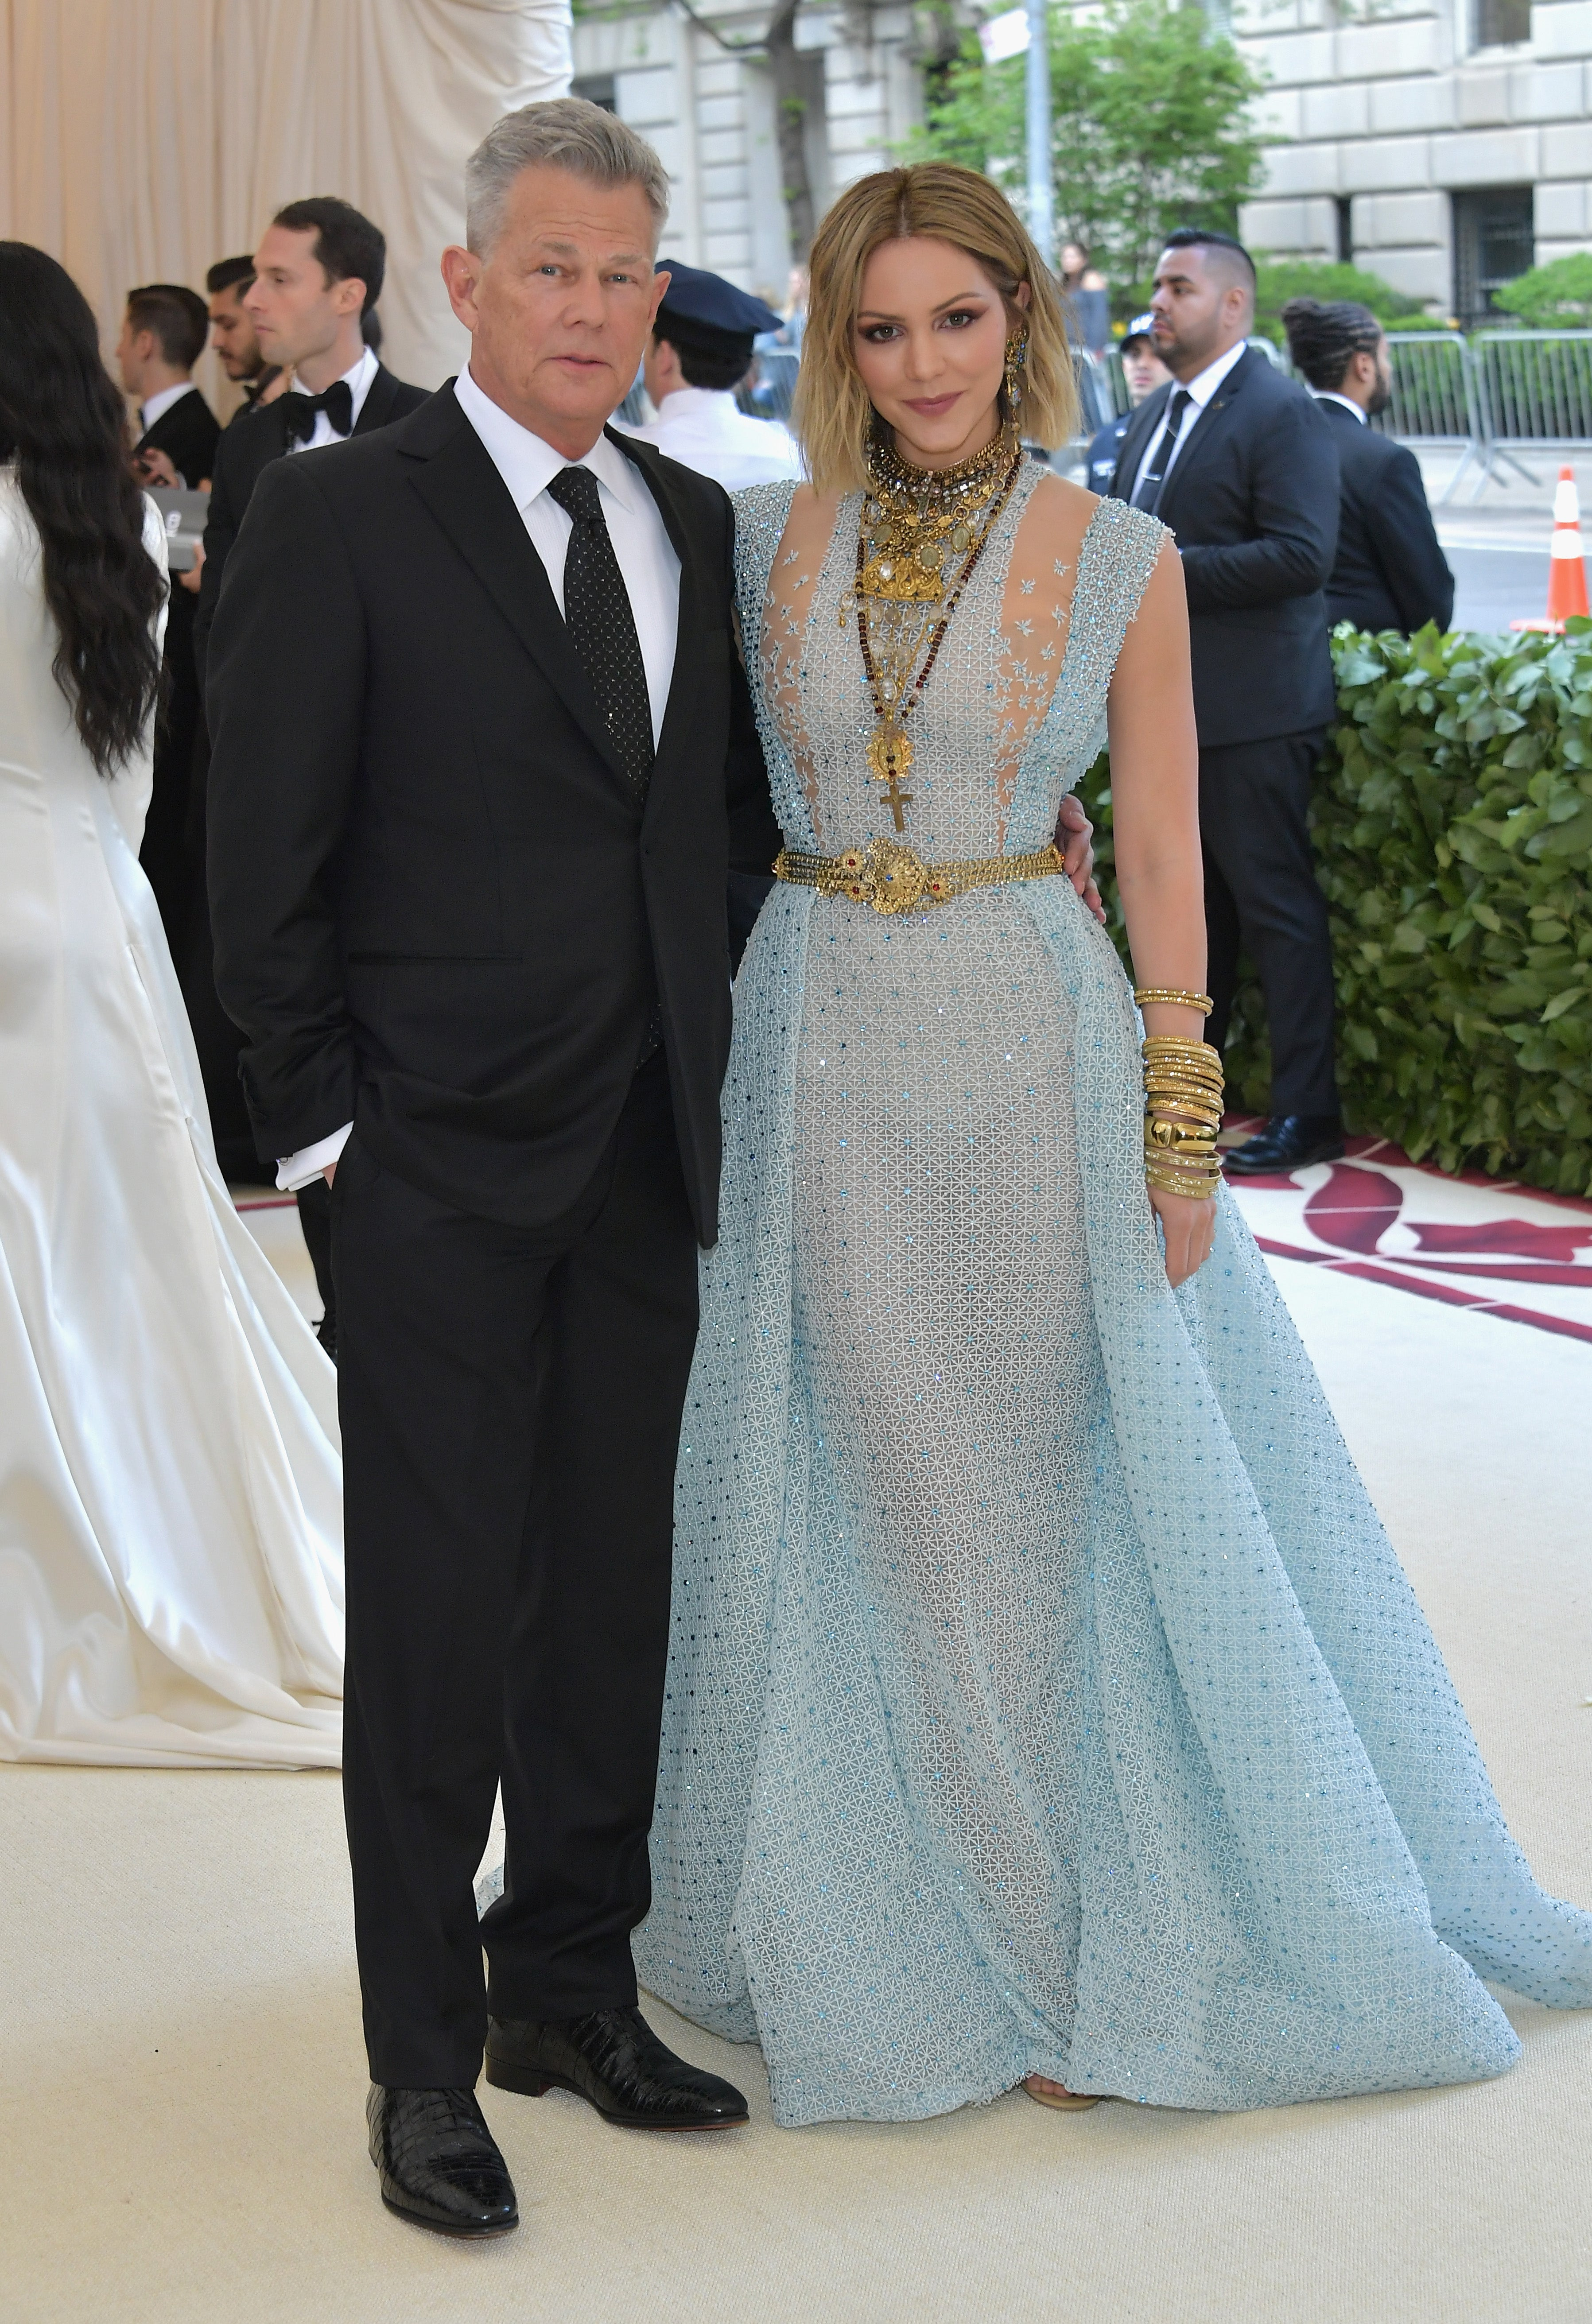 Katharine Mcphee And David Foster Make Met Gala Debut As A Couple With A Nice Date Night Exclusive Entertainment Tonight